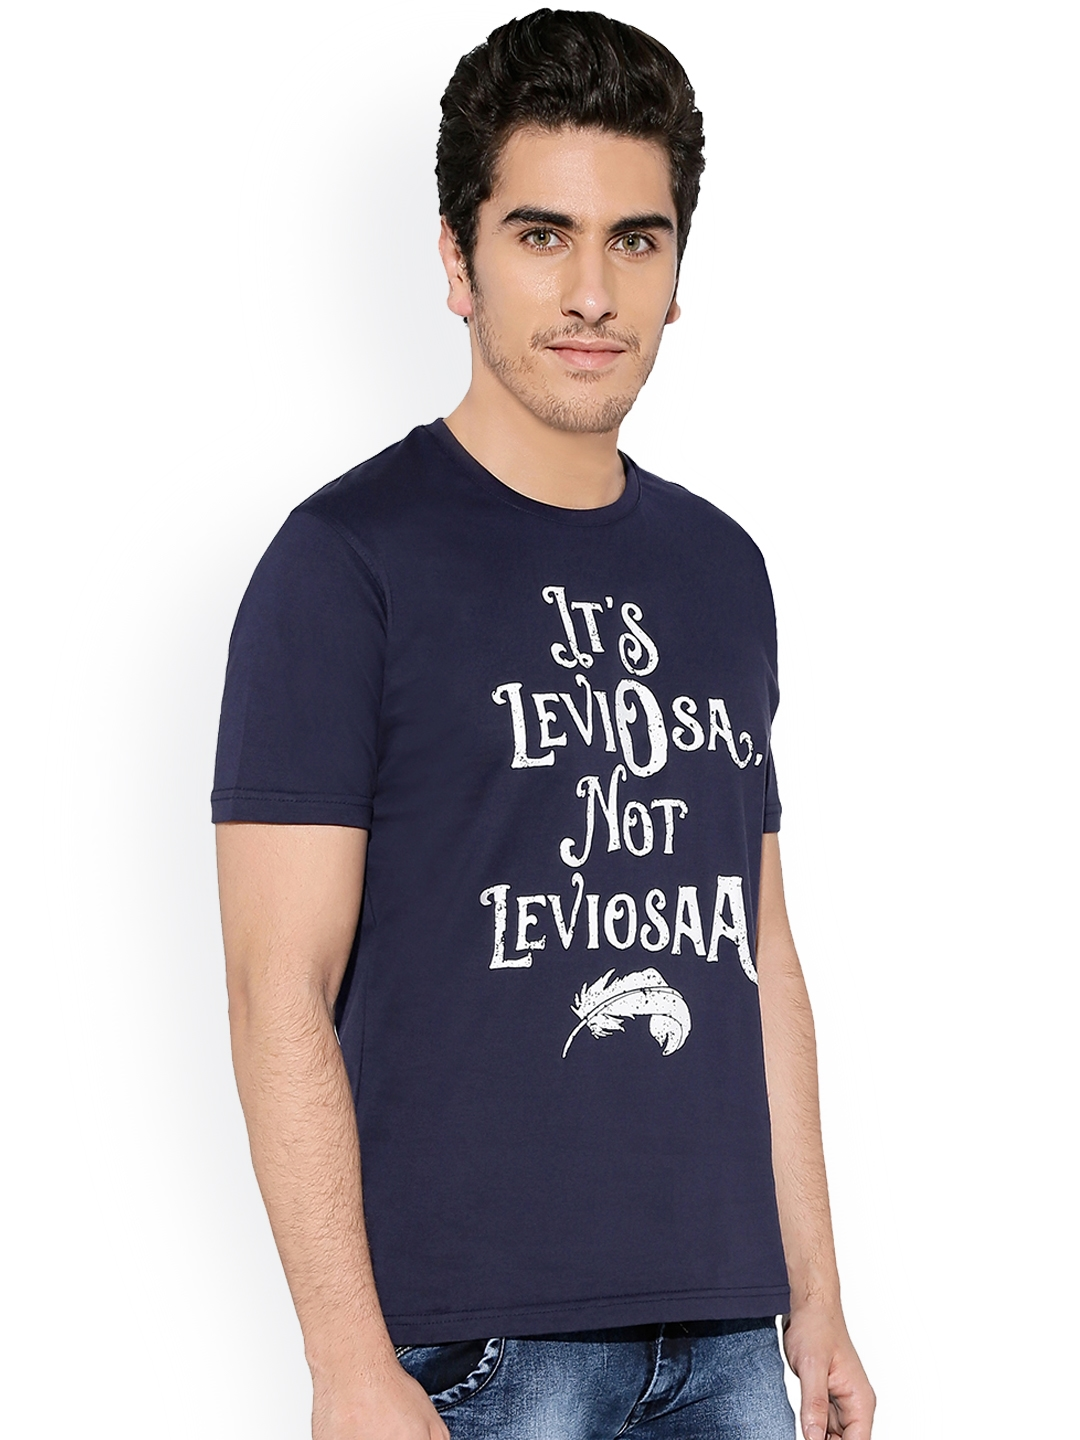 a4f382ab Buy The Souled Store Unisex Navy Blue Printed Round Neck Harry ...